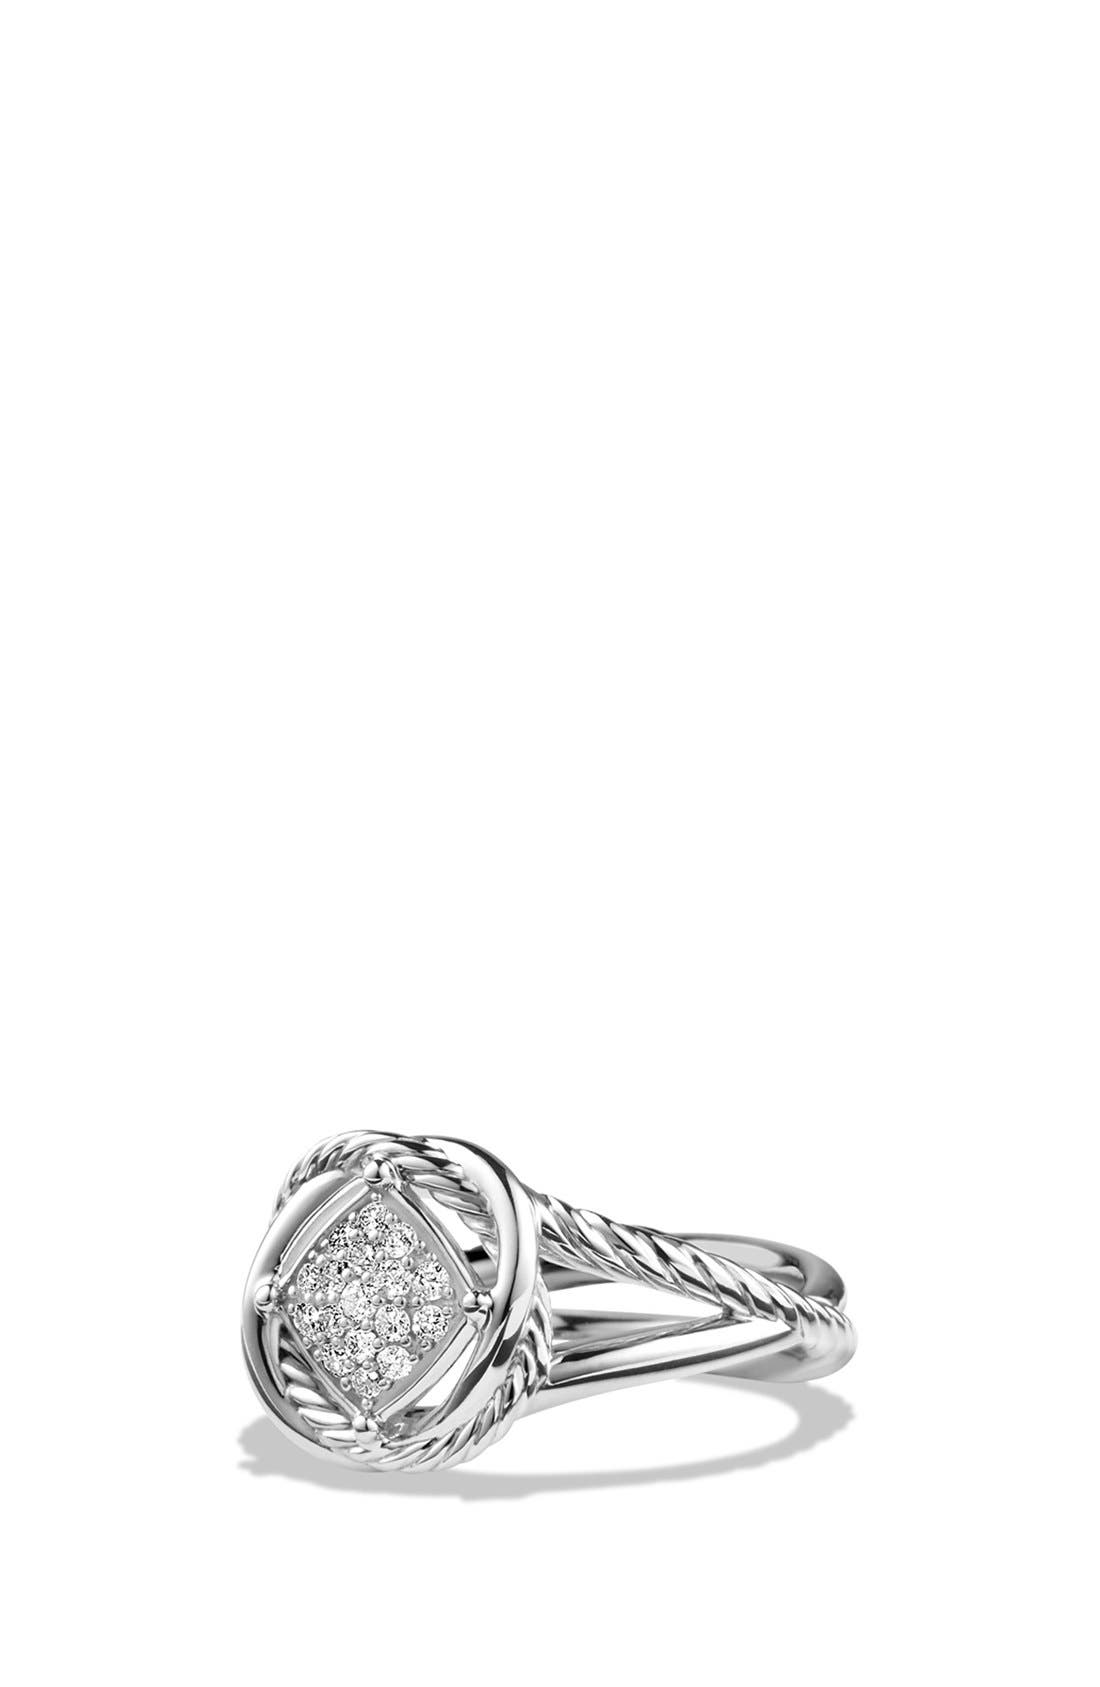 Alternate Image 1 Selected - David Yurman 'Infinity' Ring with Diamonds